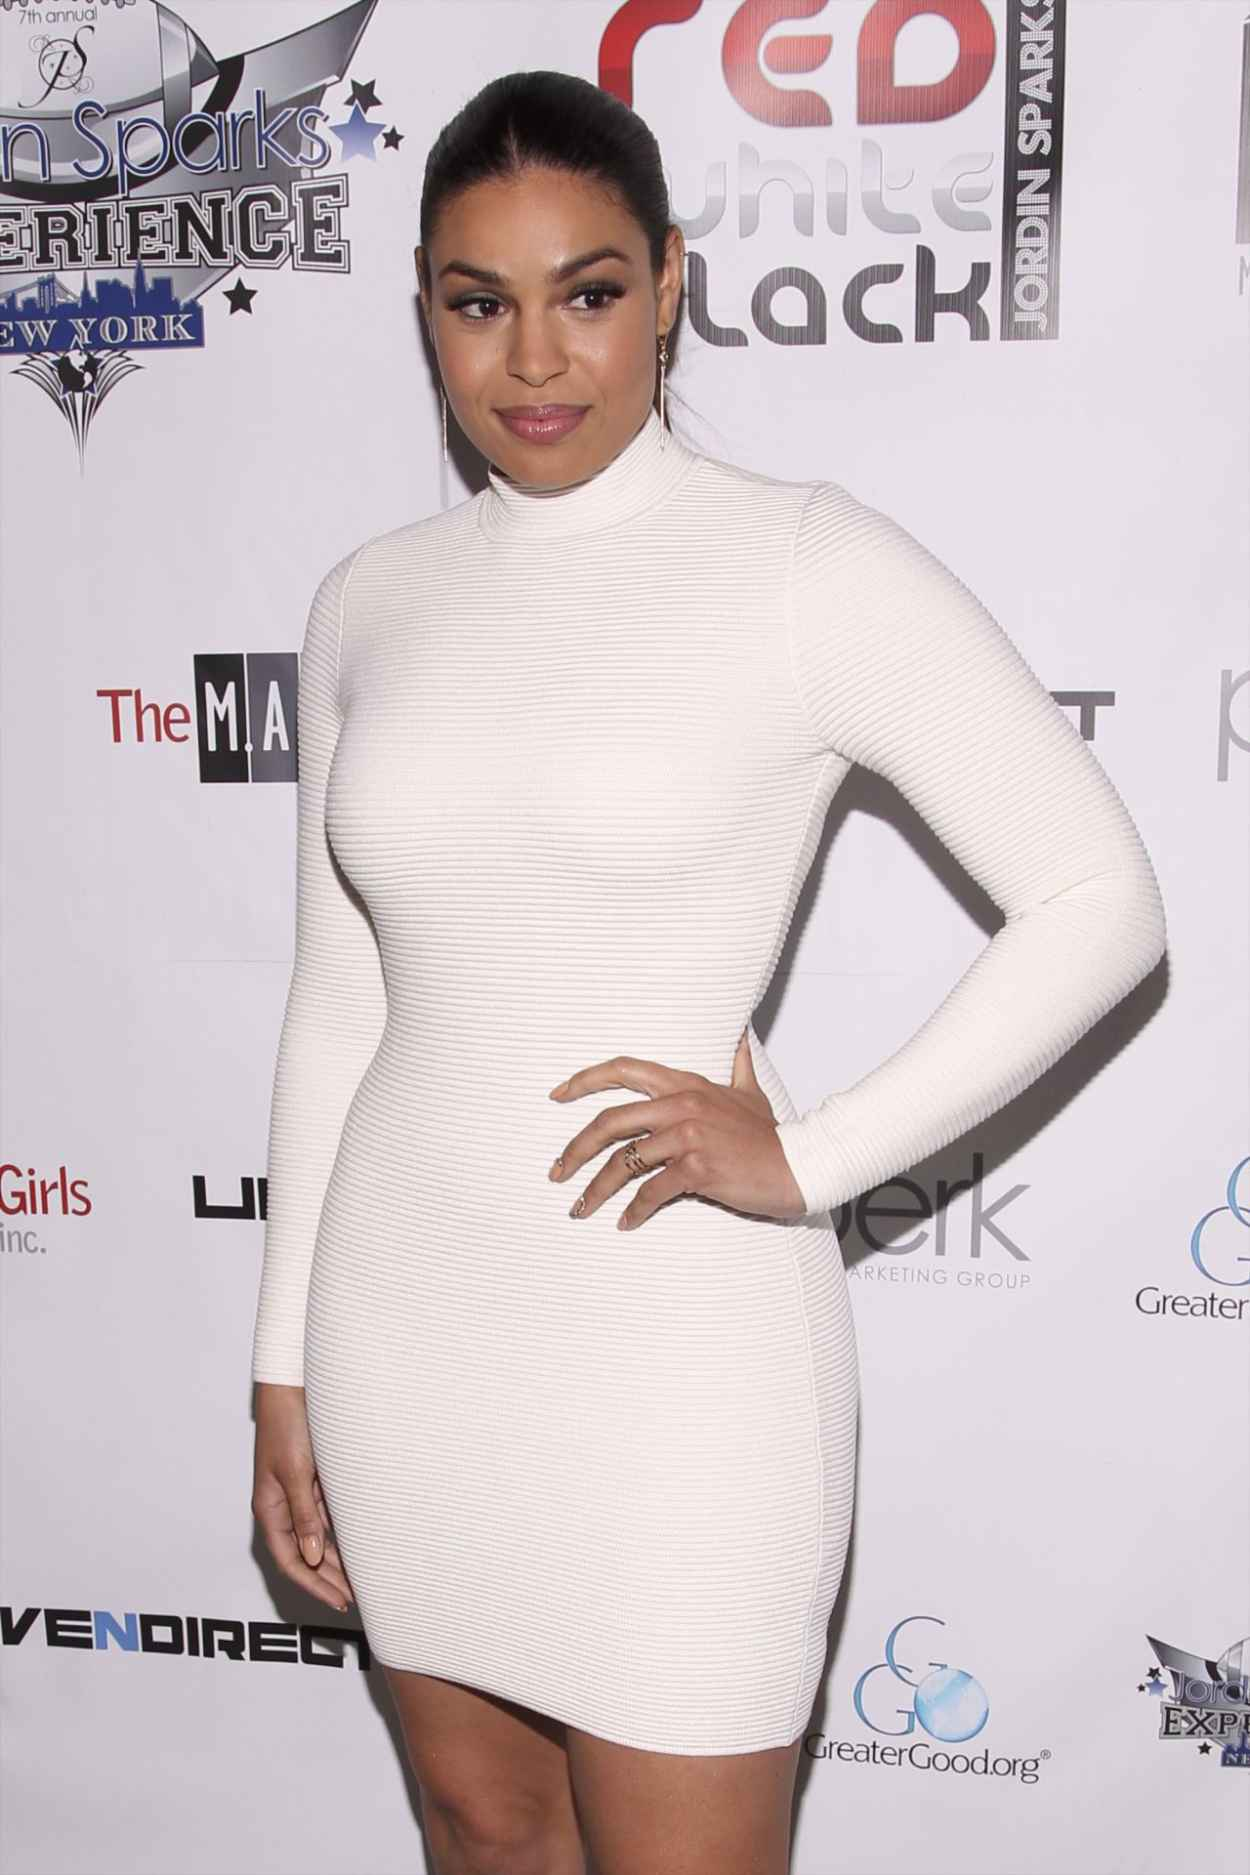 Jordin Sparks in White Dress at Welcome to New York Red, White and Black Super Bowl Party in New York-1